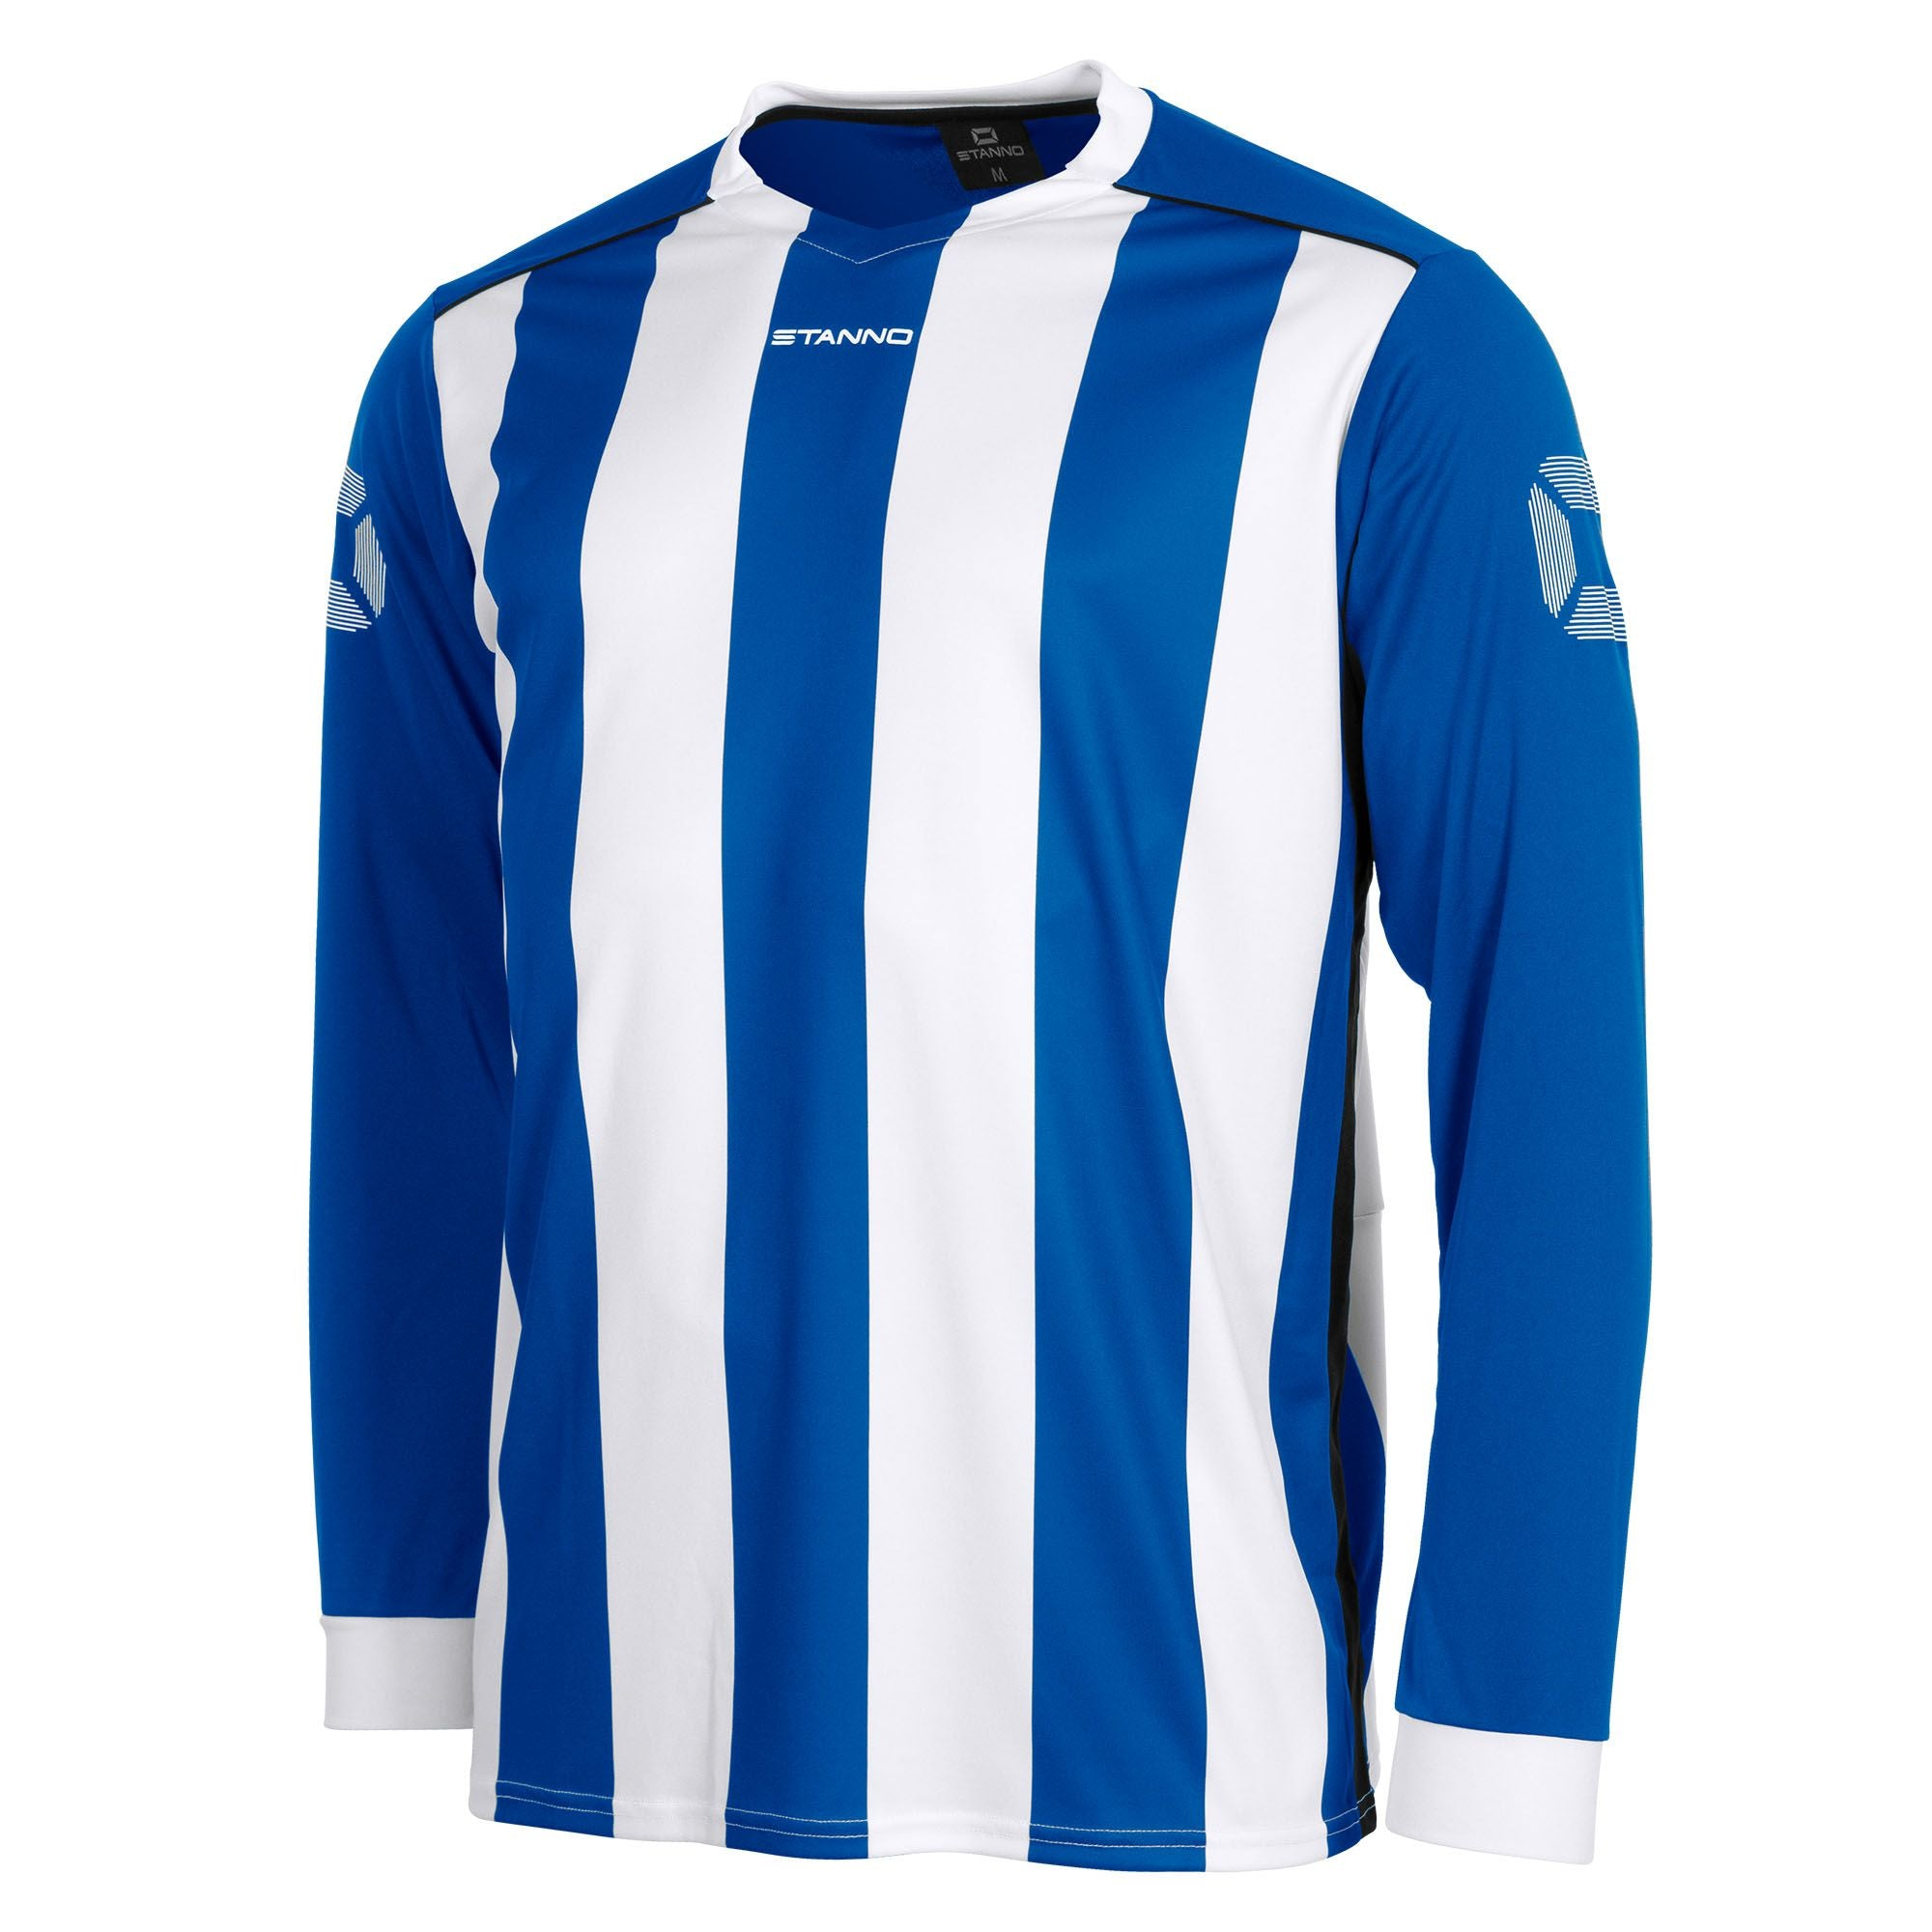 Front of Stanno Brighton long sleeved shirt in royal blue and white vertical stripes, central printed Stanno text logo on the chest